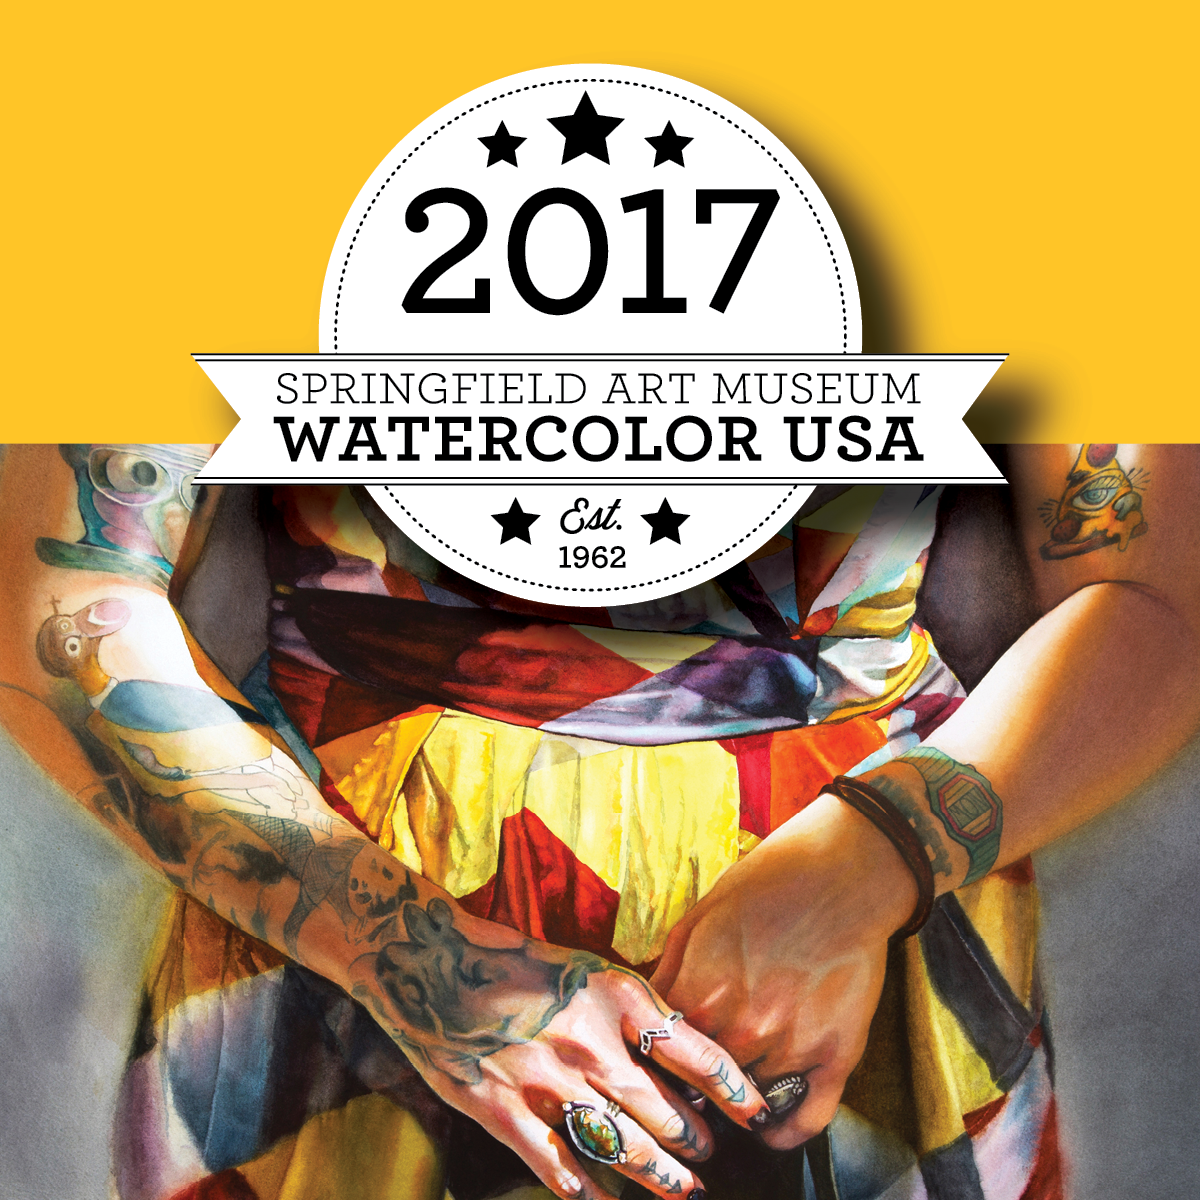 Watercolor USA 2017 Square Identity